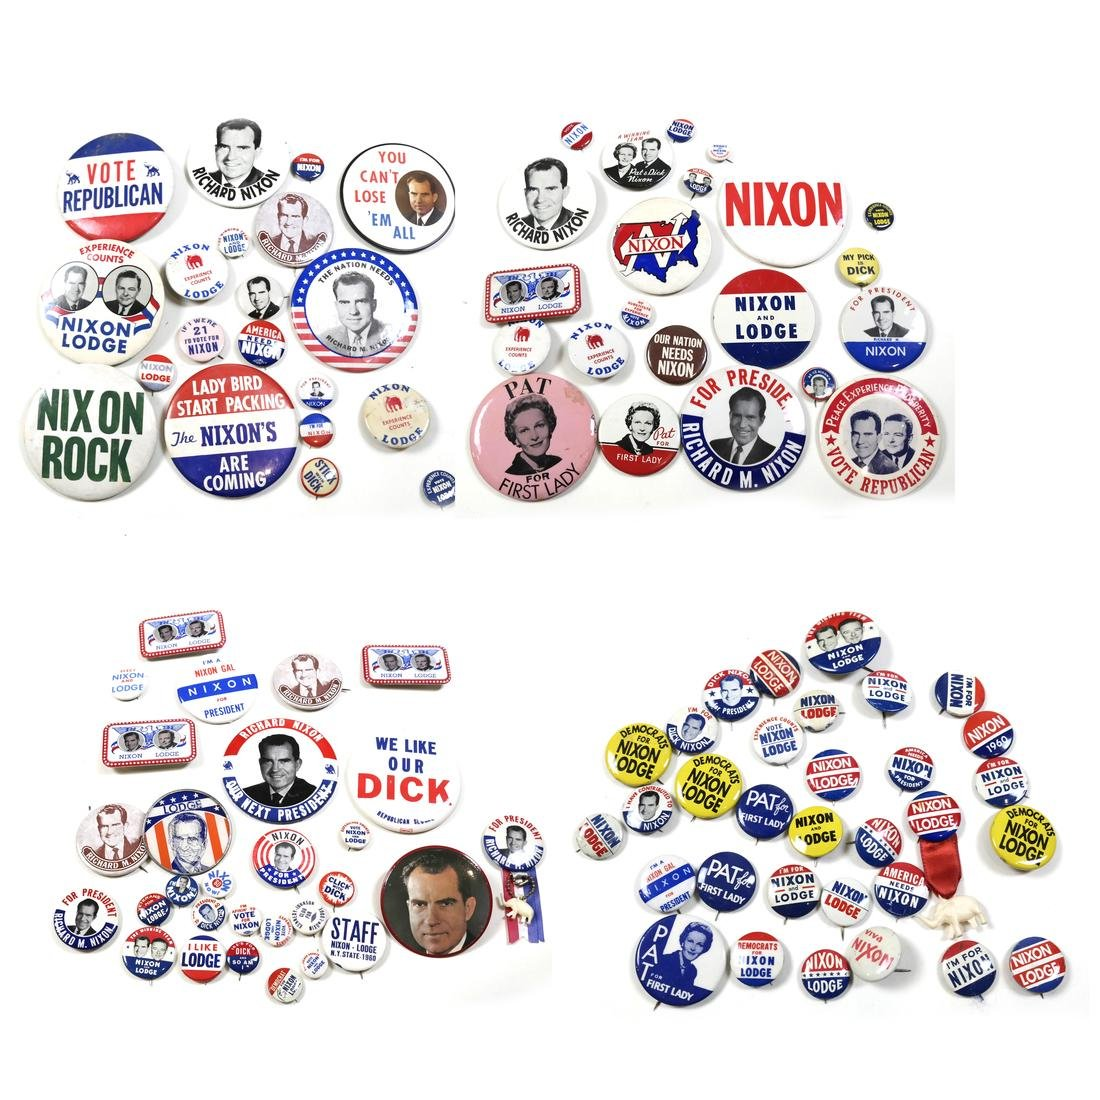 LARGE GROUP OF 1960 NIXON CAMPAIGN BUTTONS